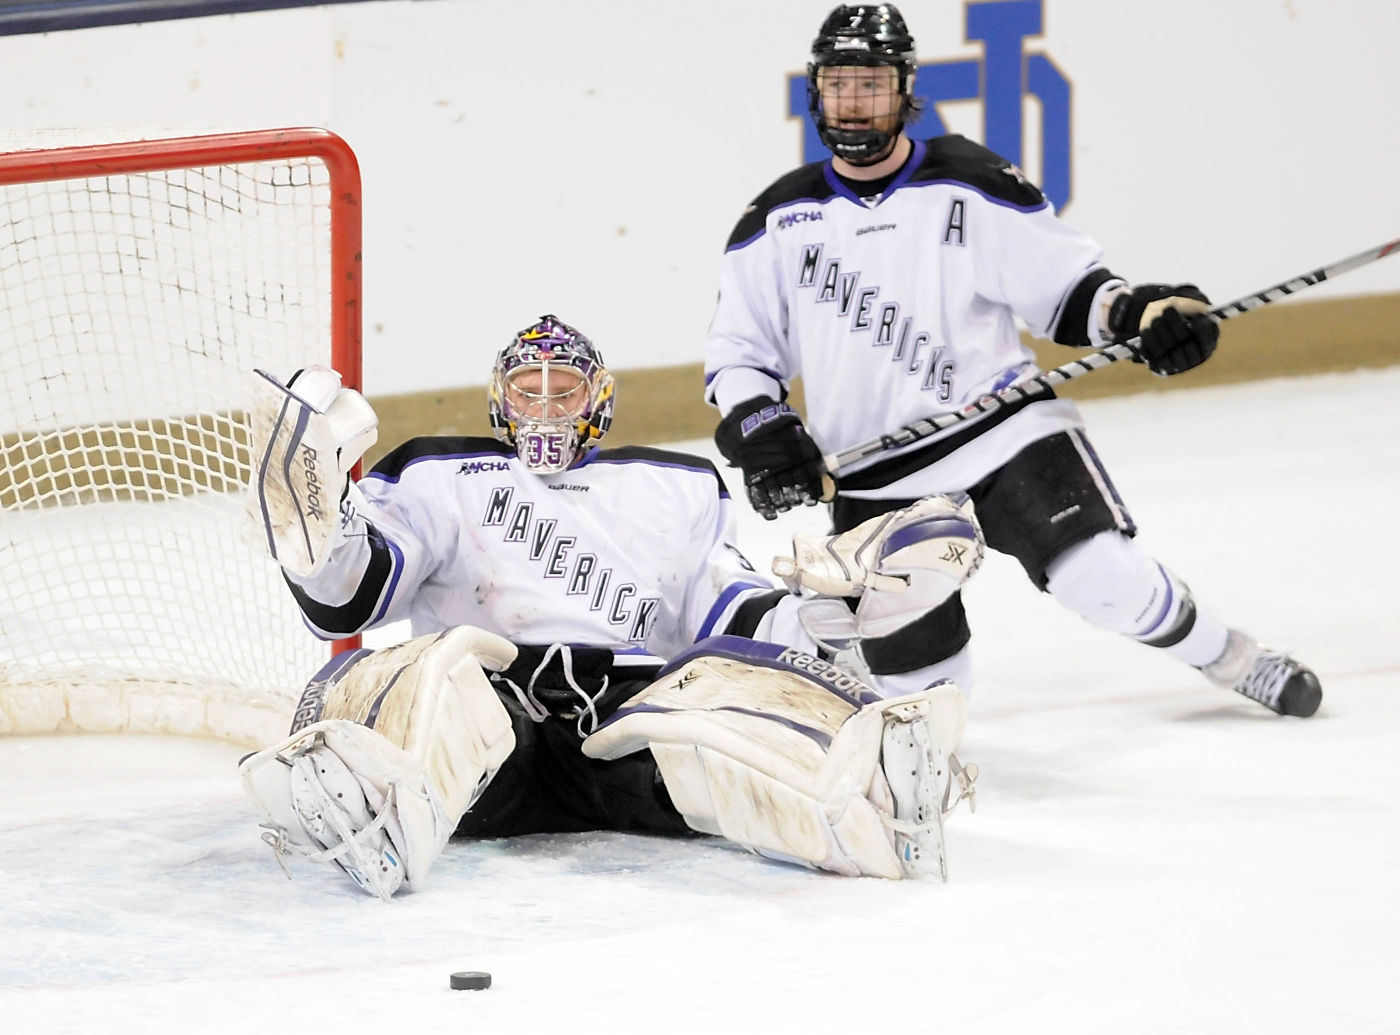 NCAA: No. 1 Minnesota State Knocked Out In First Round By N0. 35 RIT